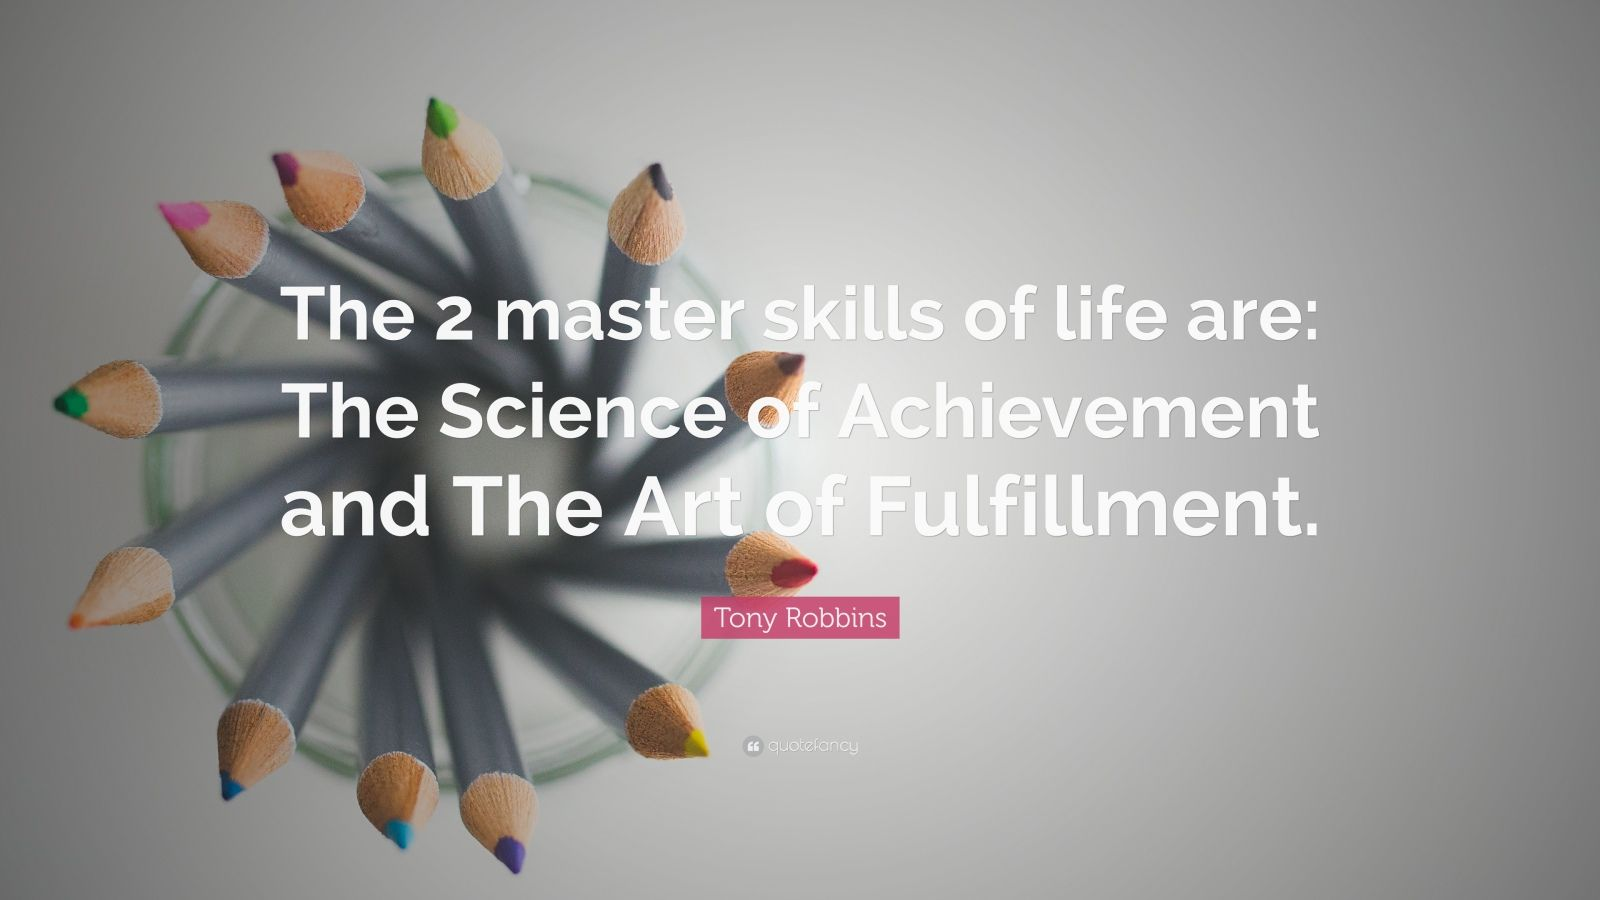 """Tony Robbins Quote: """"The 2 master skills of life are: The Science of Achievement and The Art of Fulfillment."""""""